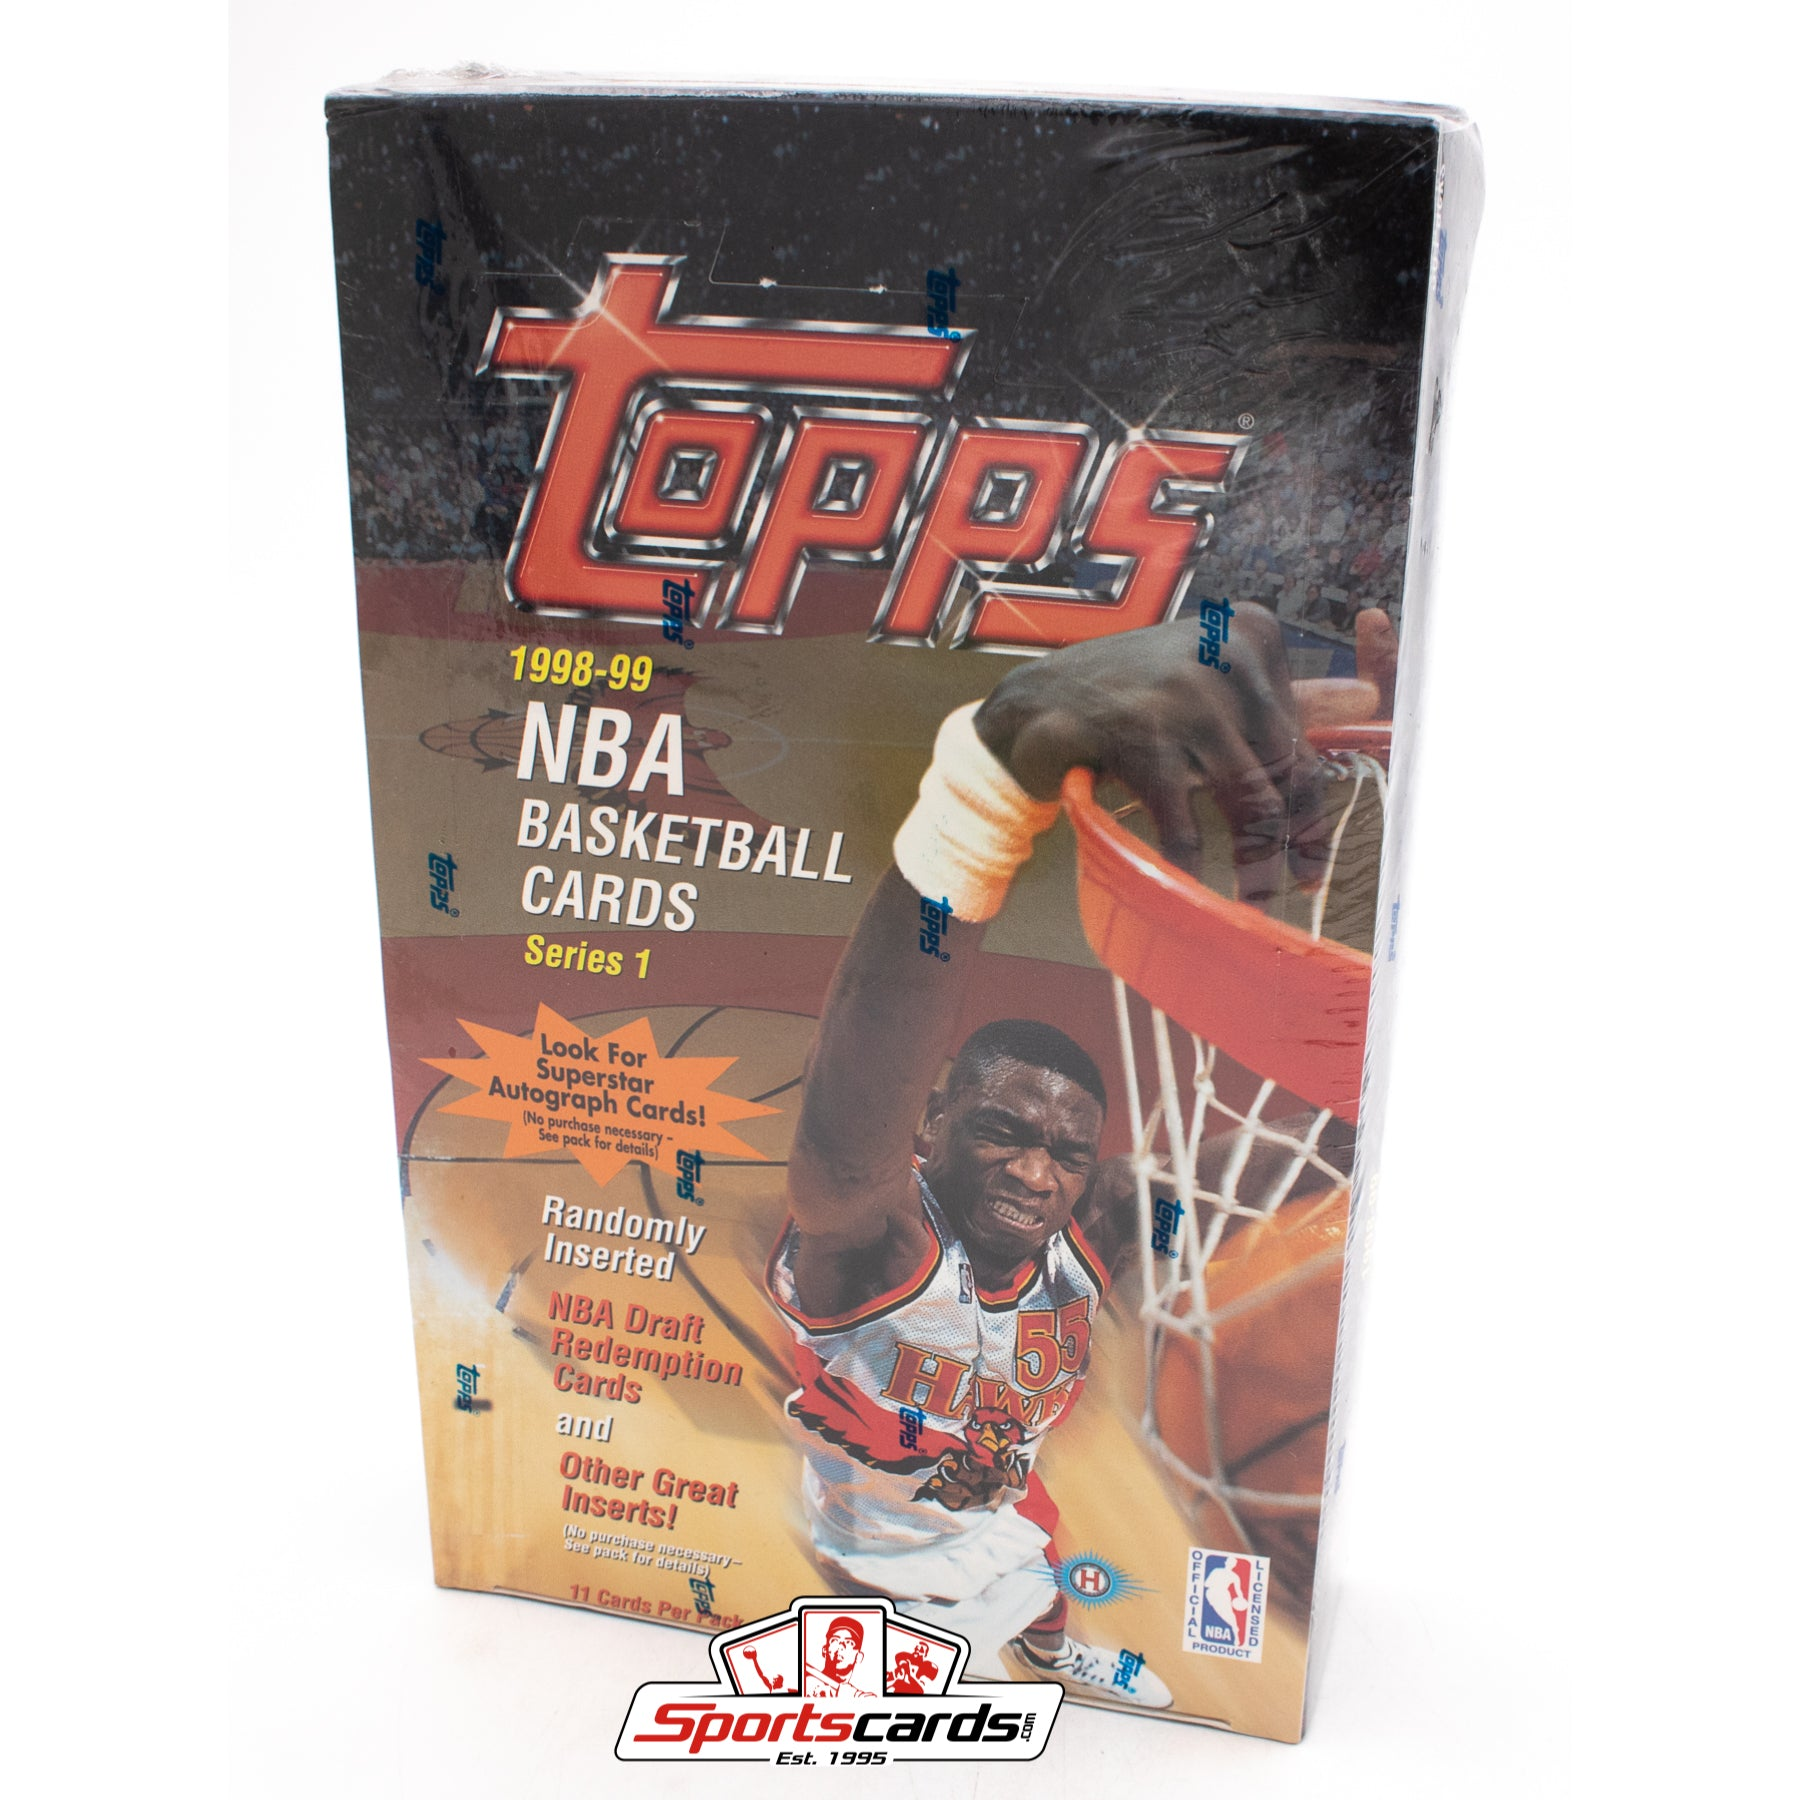 1998-99 Topps NBA Basketball Series 1 Factory Sealed Hobby Box